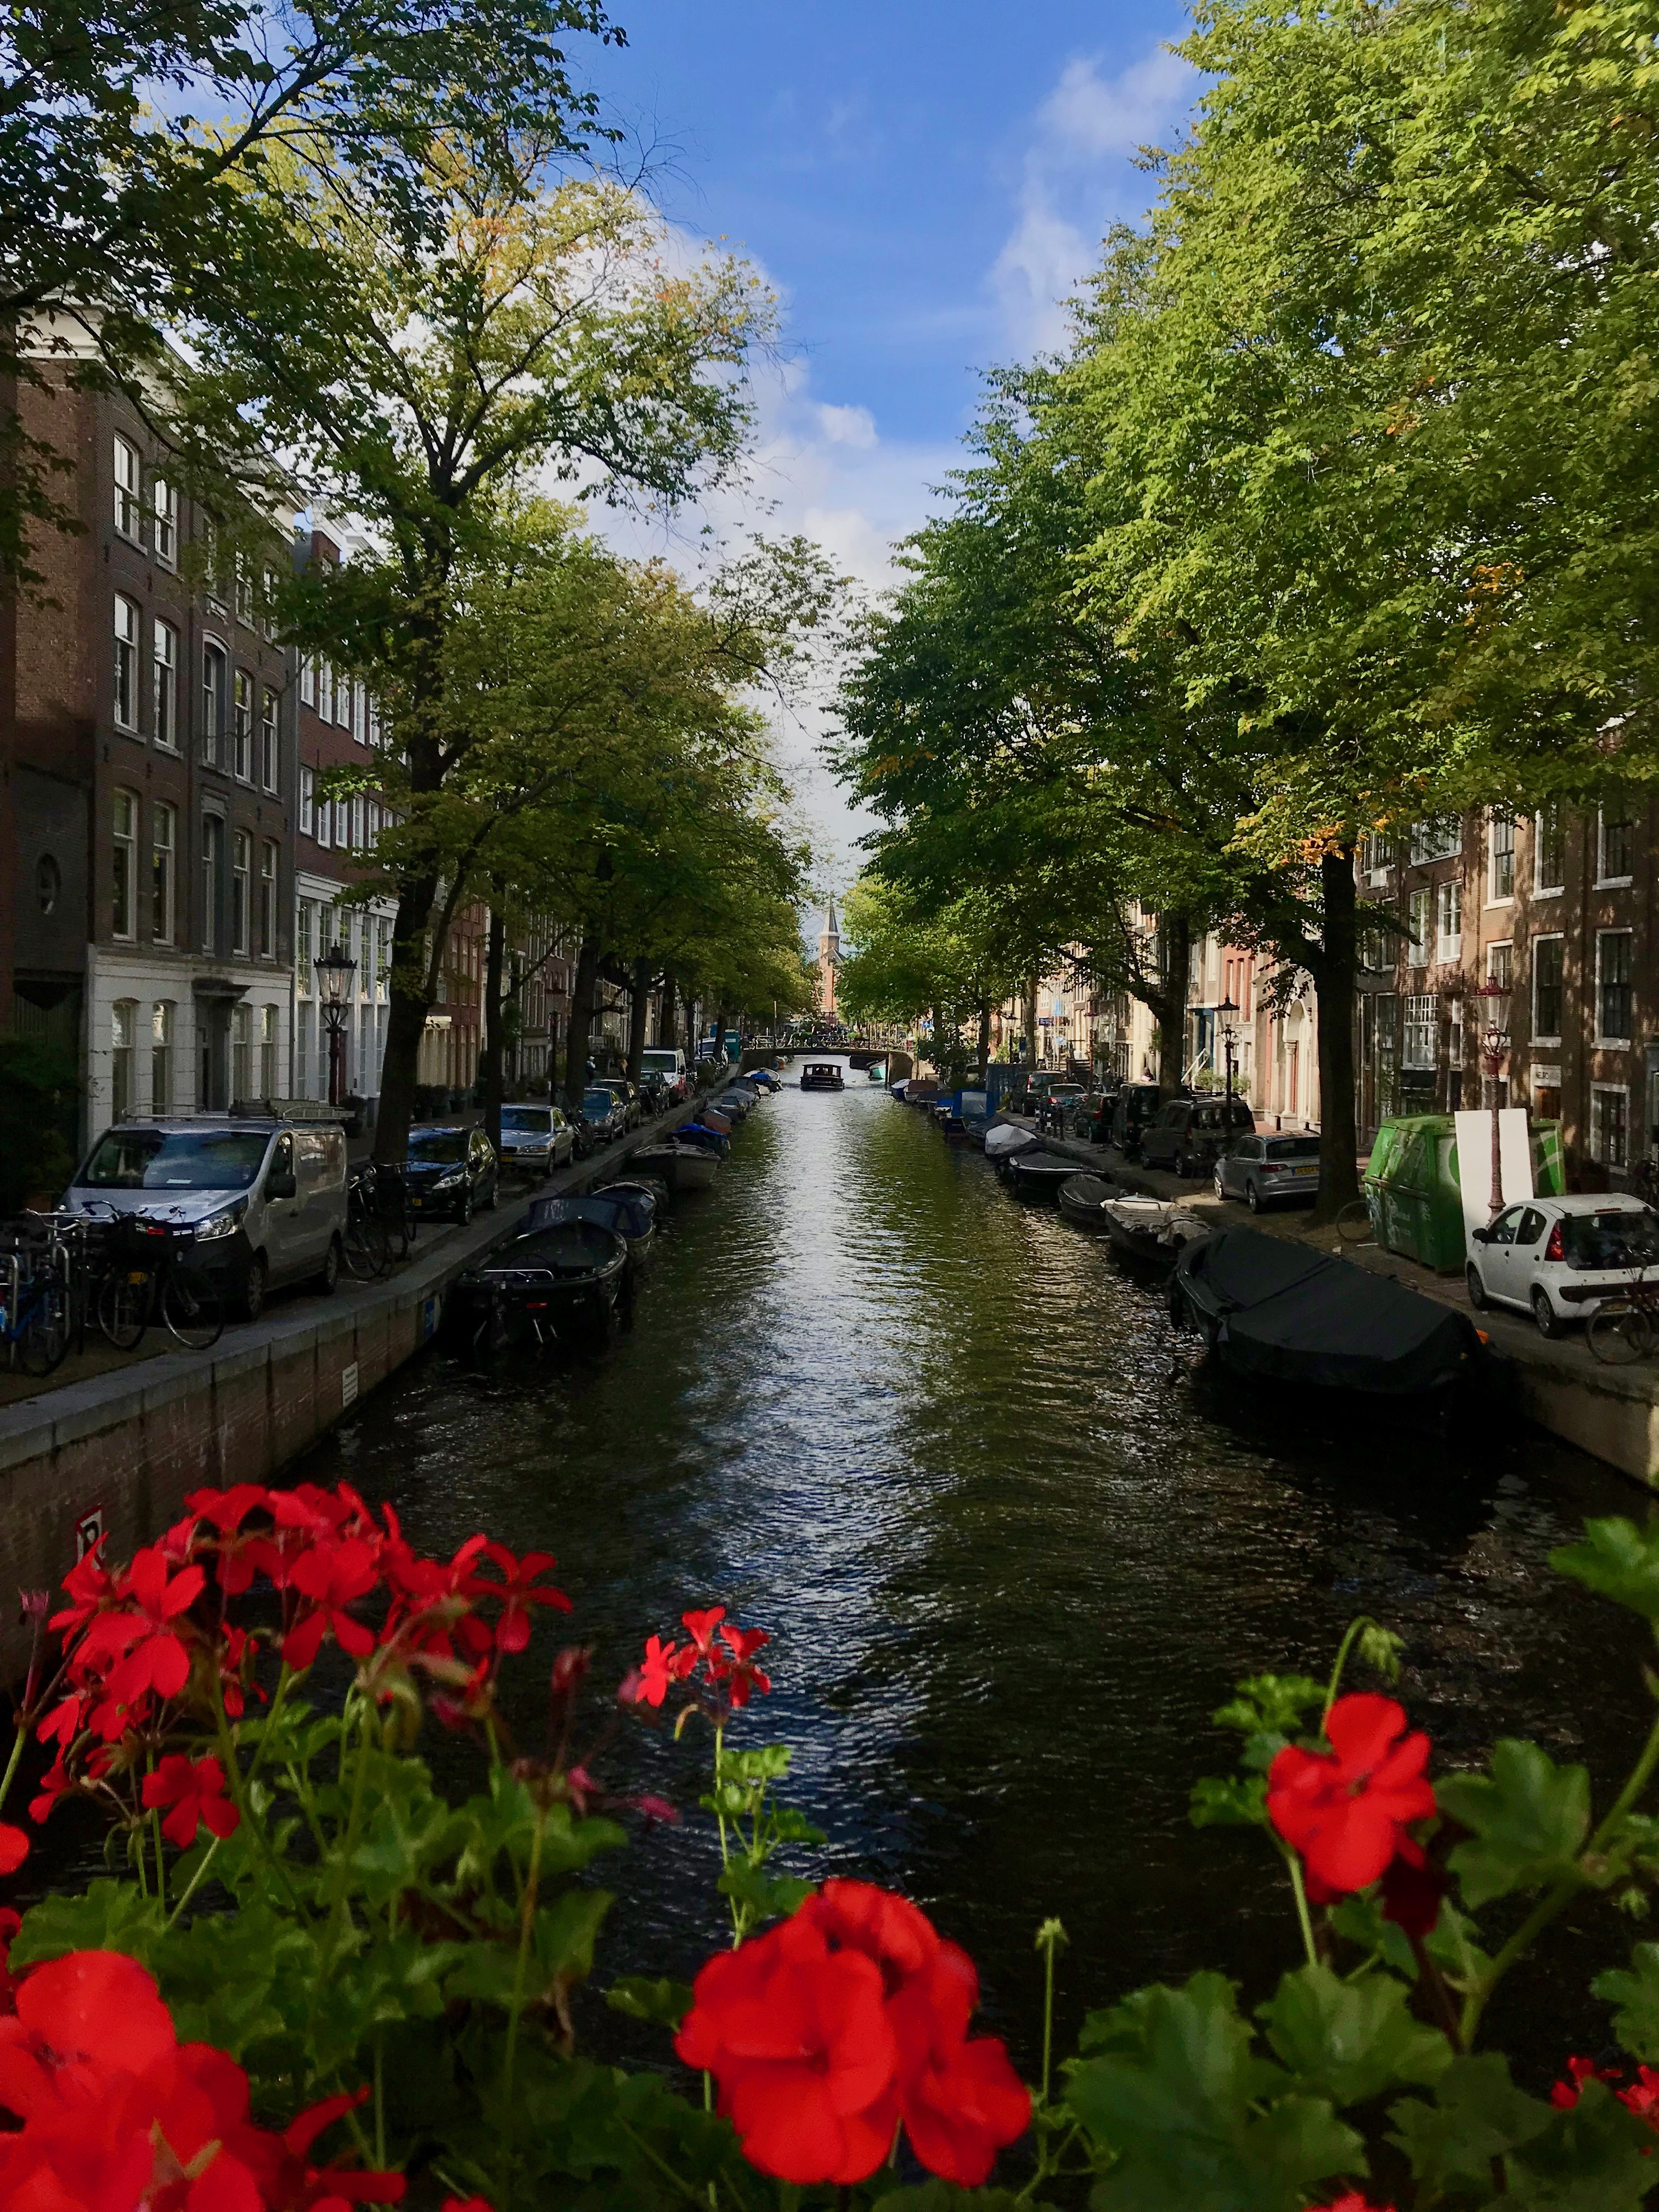 Amsterdam has 165 canals whose length stretches across approximately 31 miles.  Miriam Groner/JW